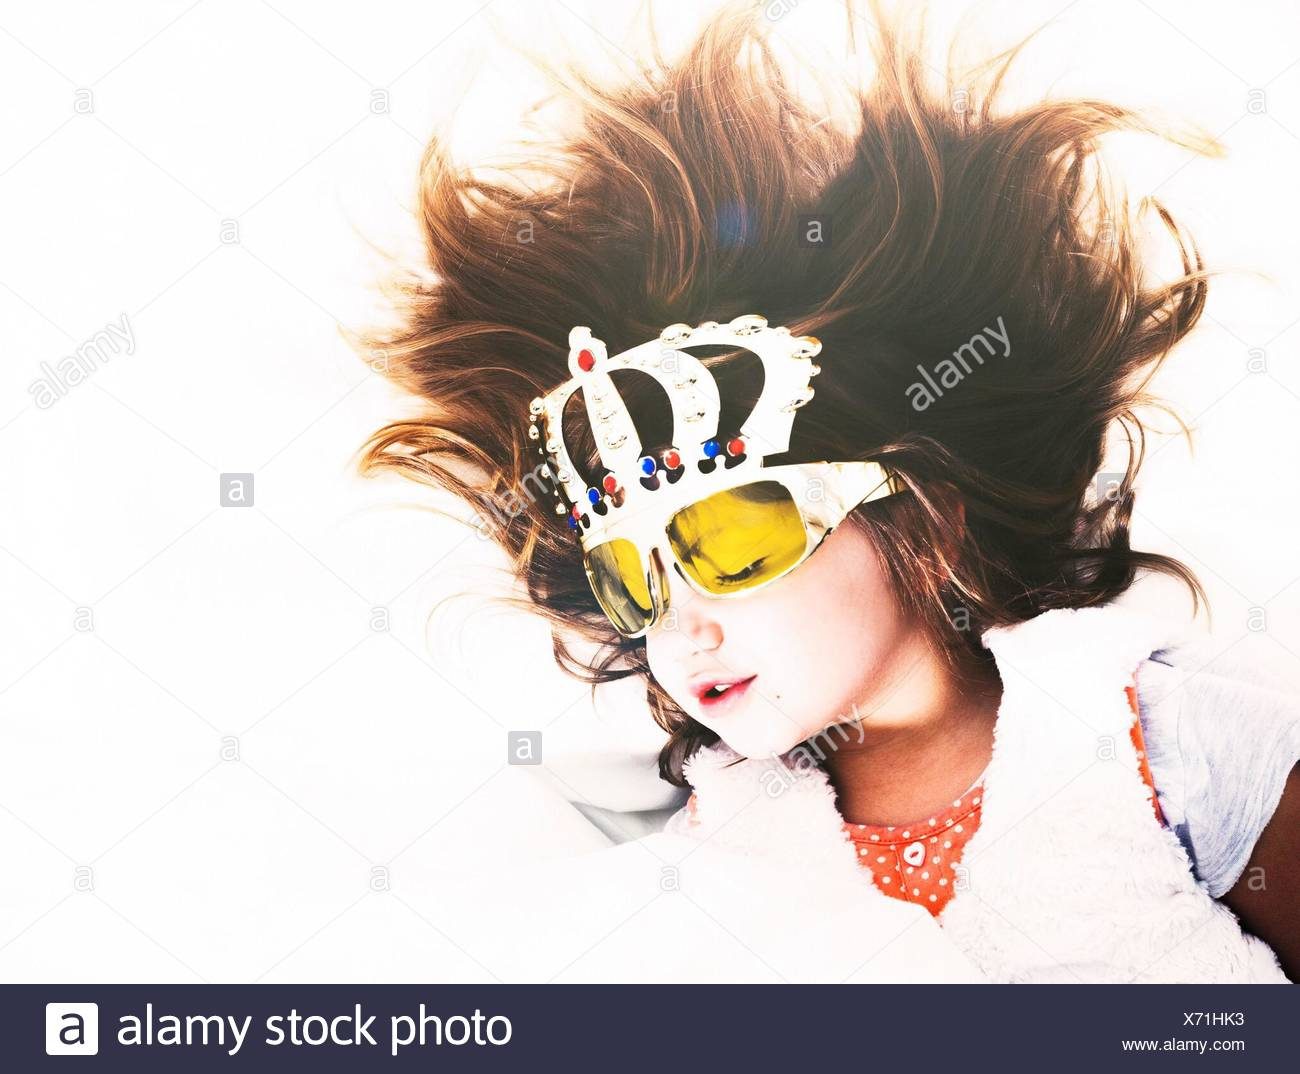 Cute Girl Wearing Decorative Glasses While Sleeping On Bed - Stock Image